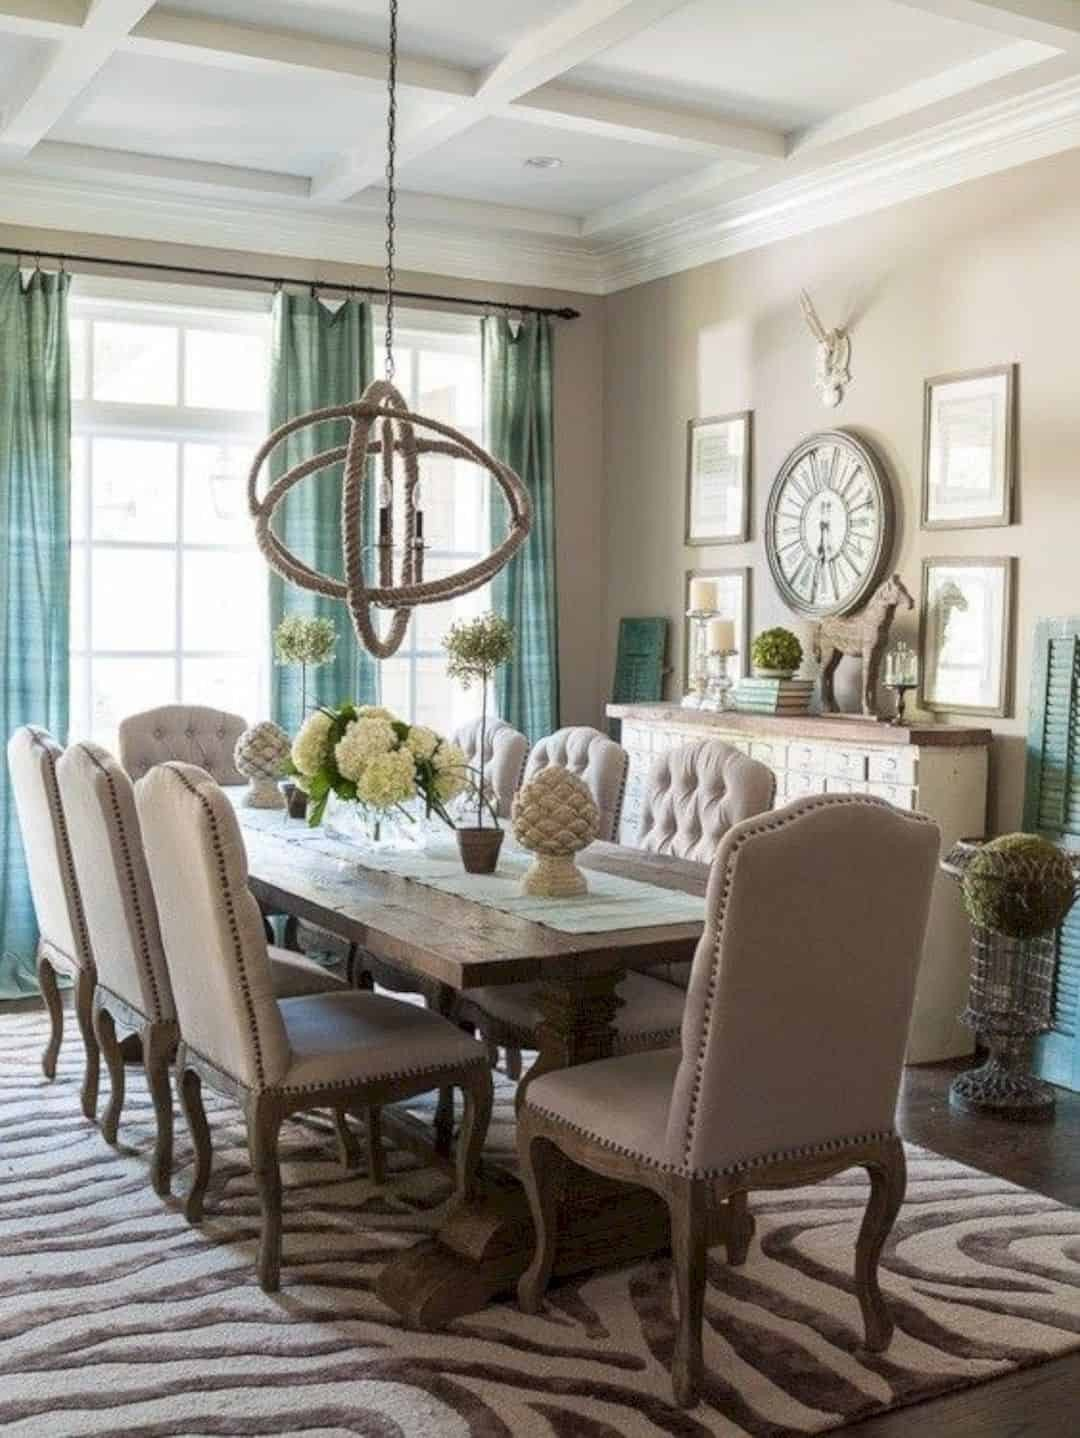 Dining Room Wall Decor Ideas Awesome 16 Dining Room Wall Decorating Ideas